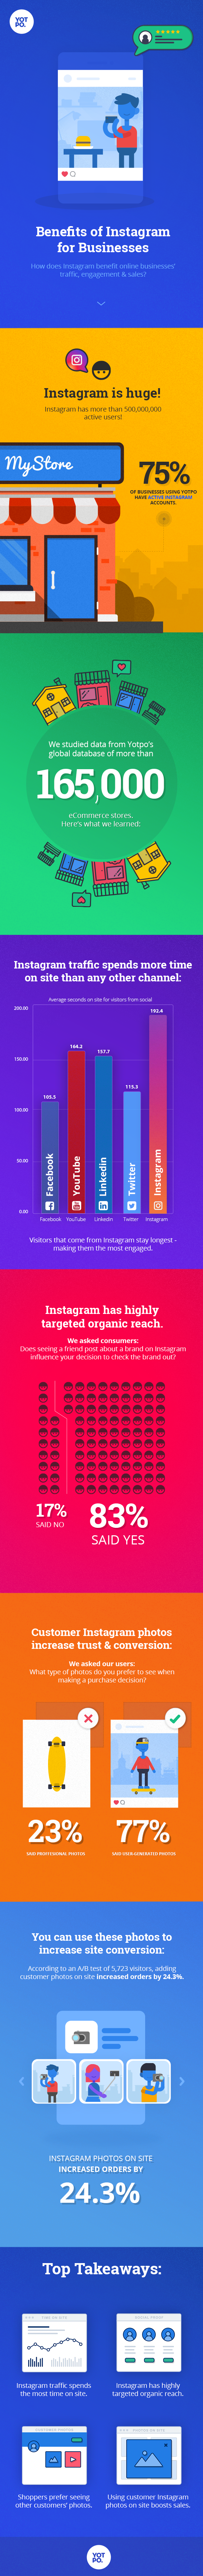 How to Sell on Instagram: 5 Data-Driven Tips for Success